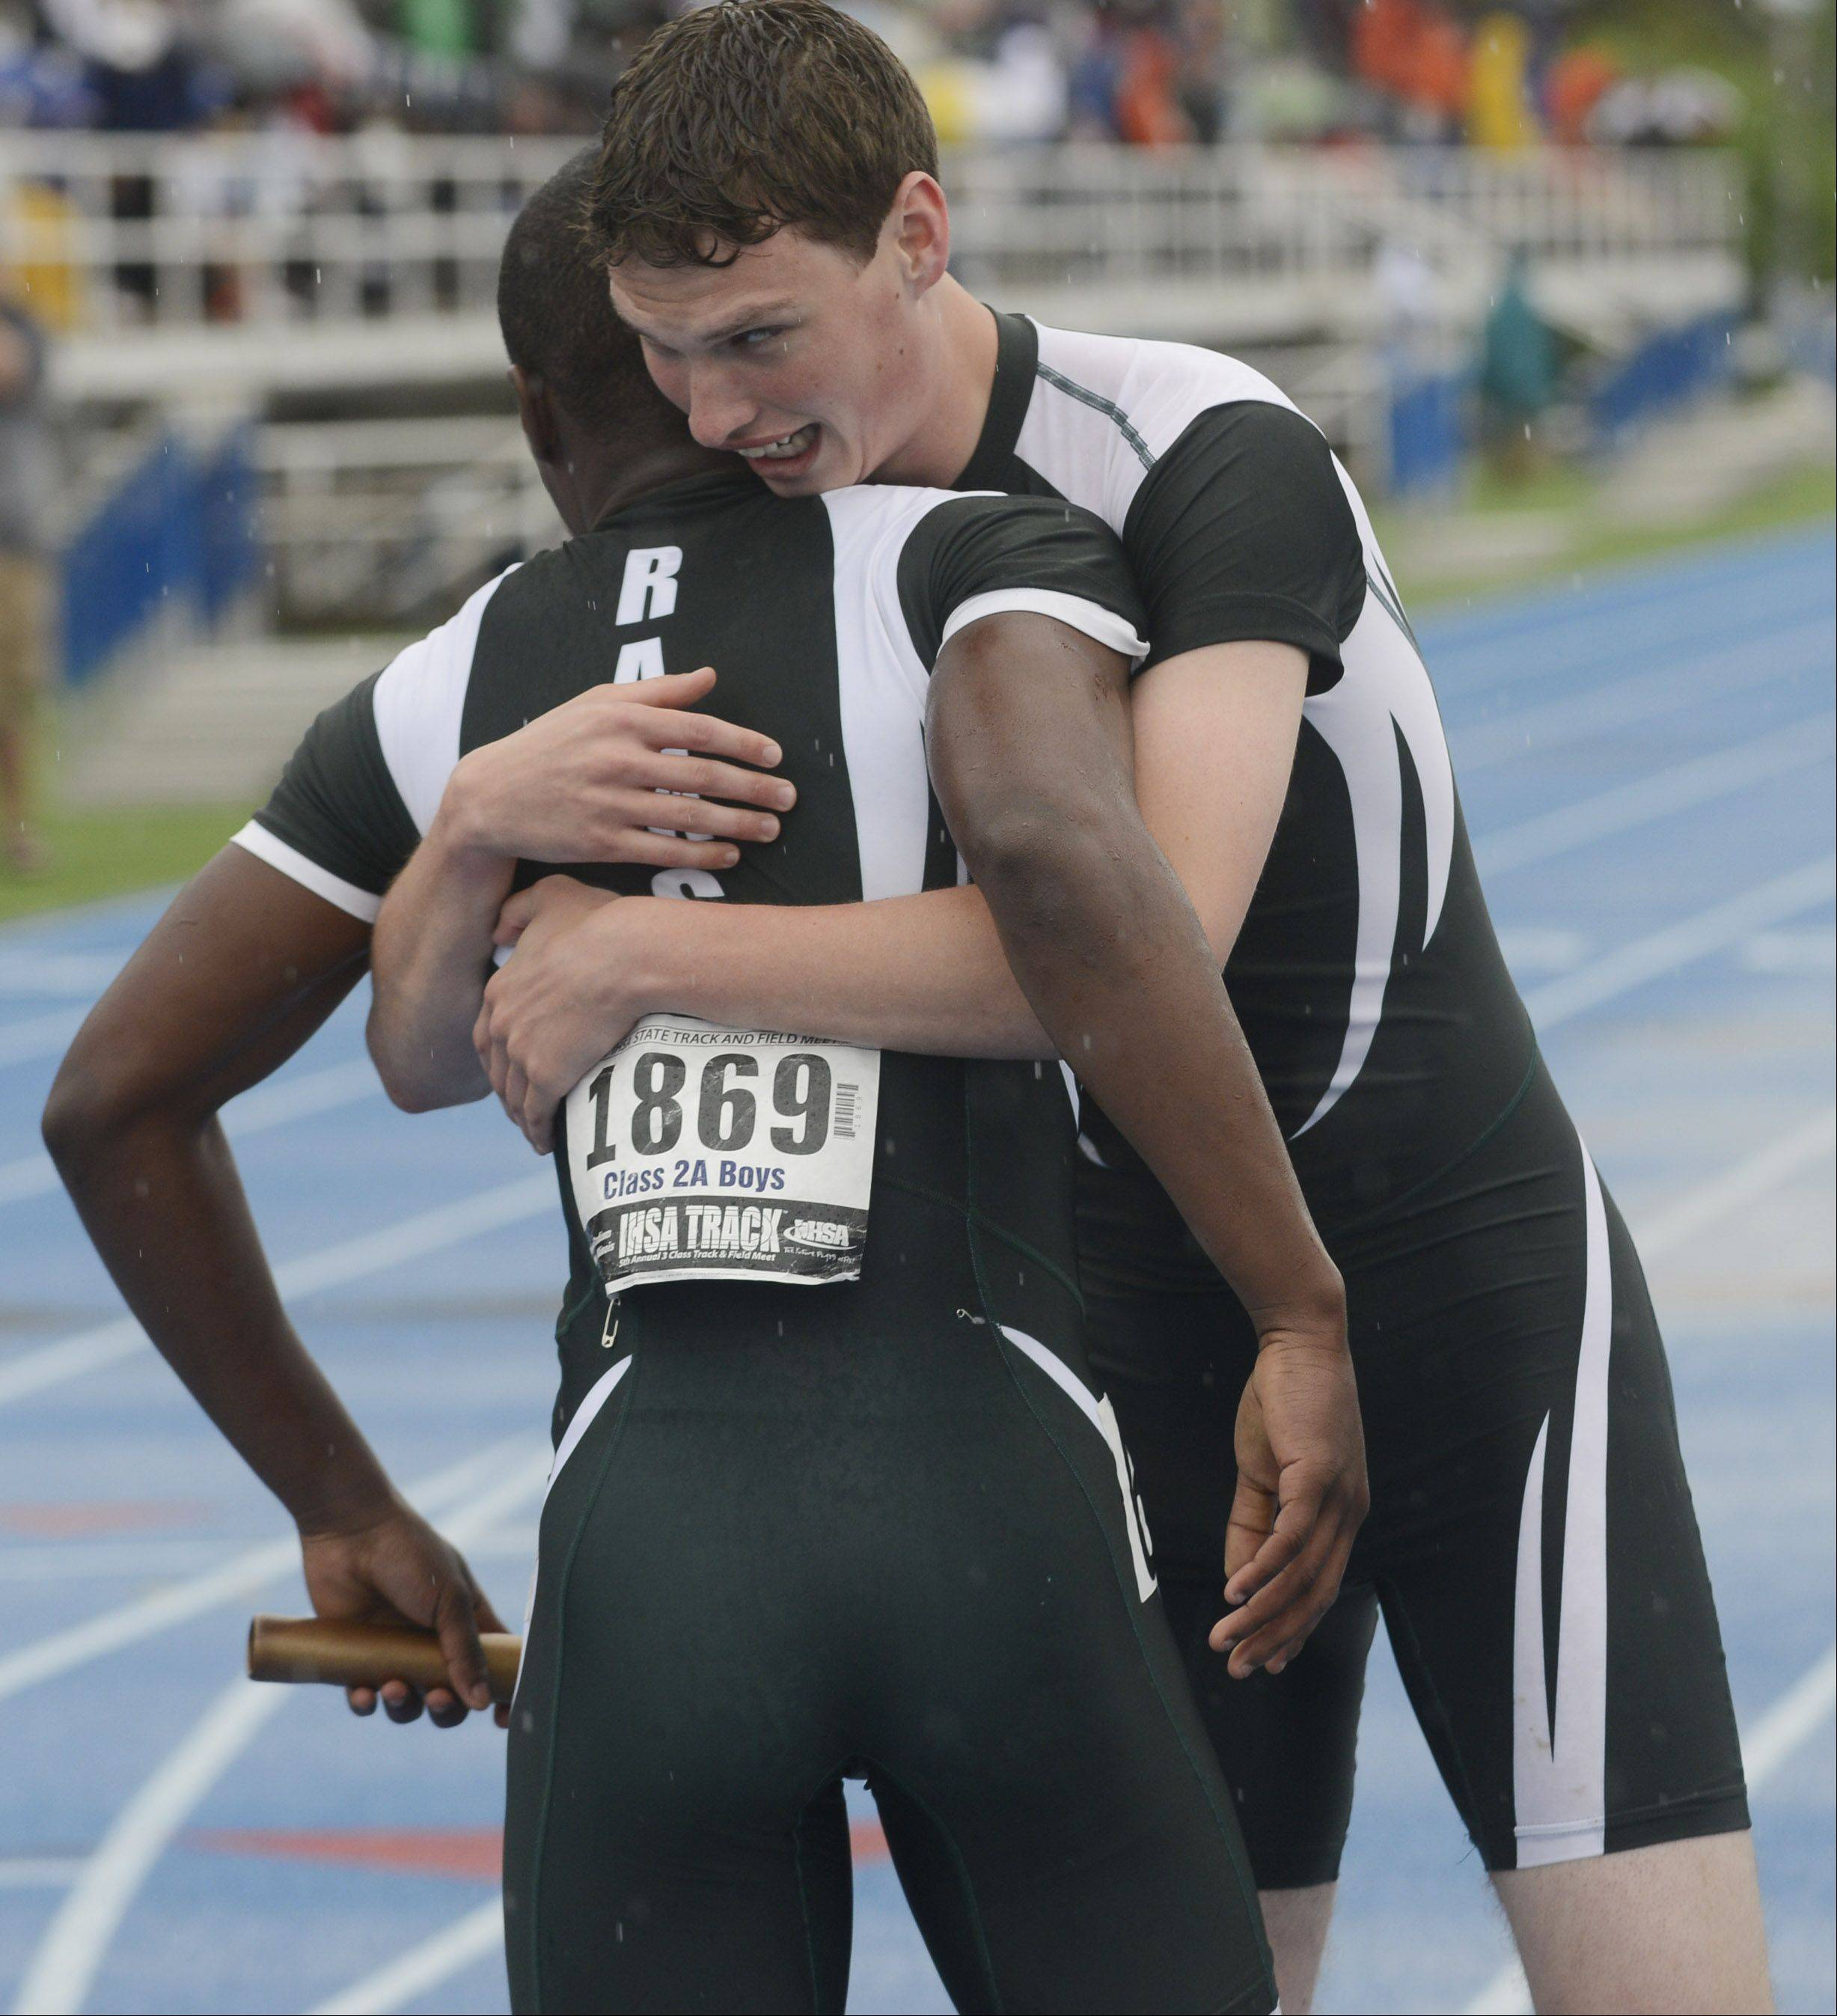 Grayslake Central's Matt Weatherhead, right, hugs teammate Dimitri Dawson at the finish line after the Rams won the class 2A 4x200-meter relay during the boys state track finals in Charleston Saturday.